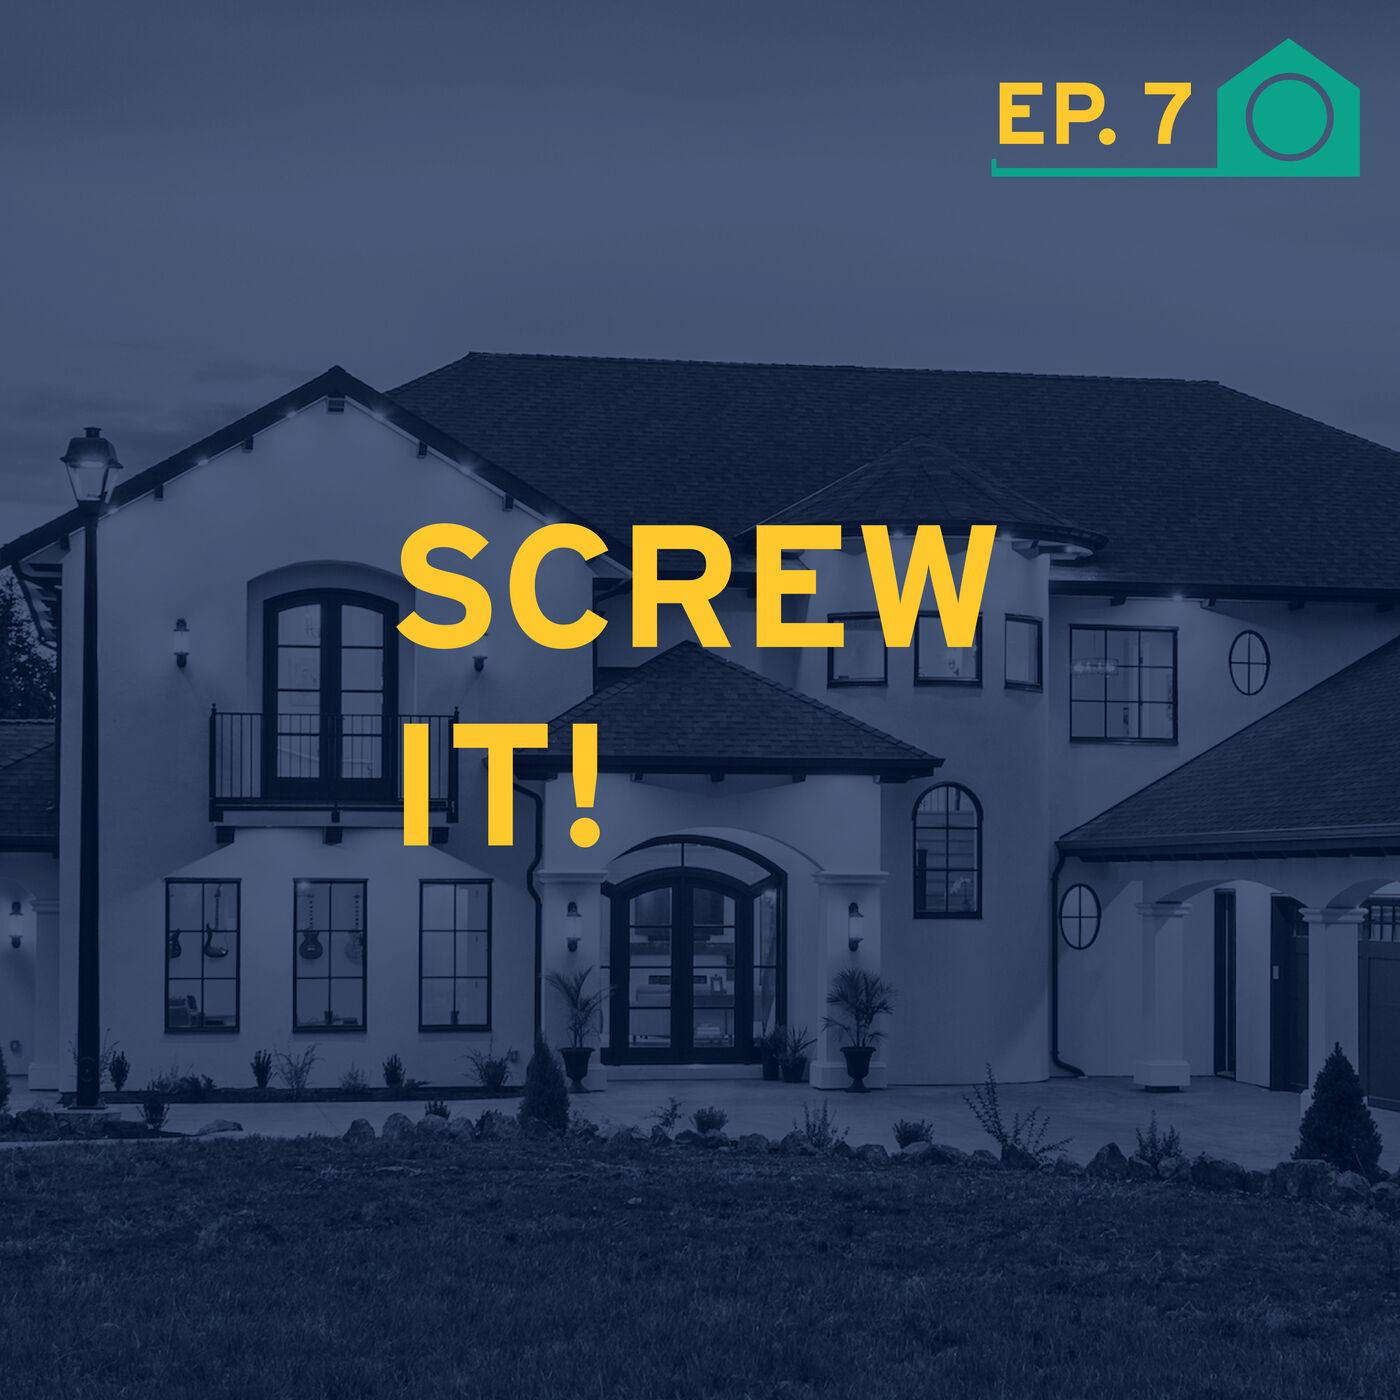 Screw It! The pre-construction planning stage